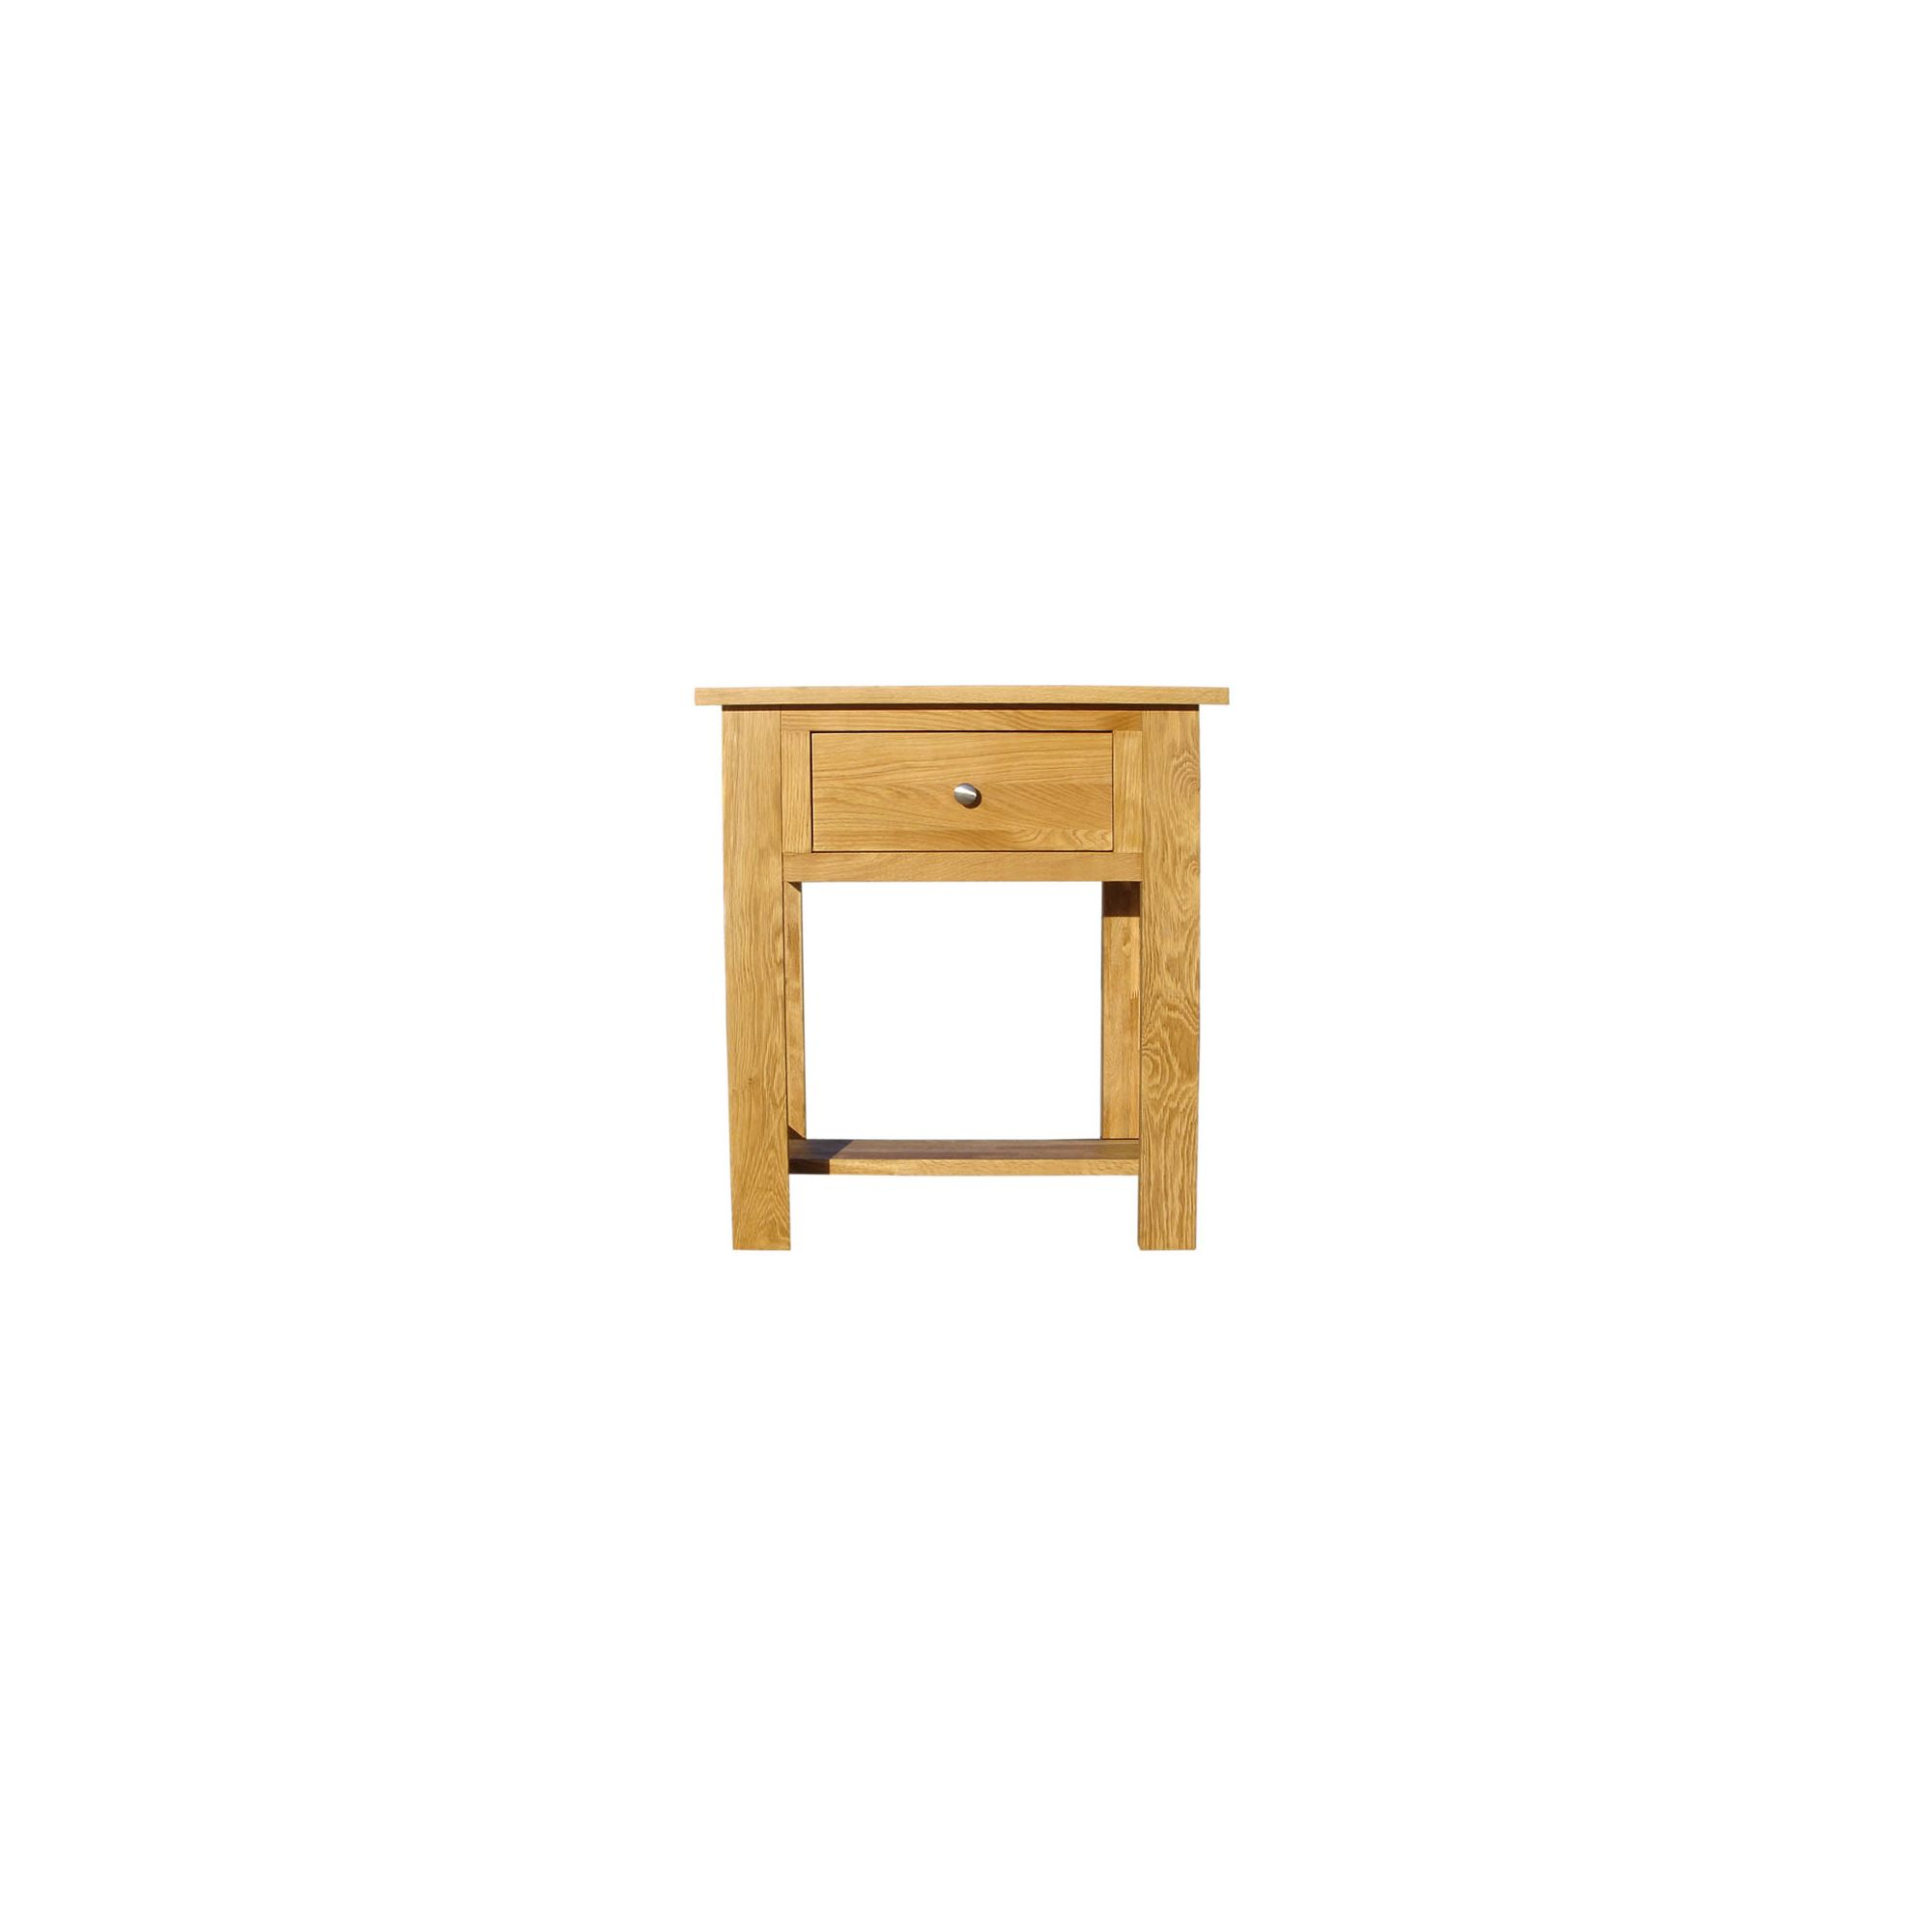 Home Zone Furniture Lincoln Oak 2009 Small Console Table at Tesco Direct